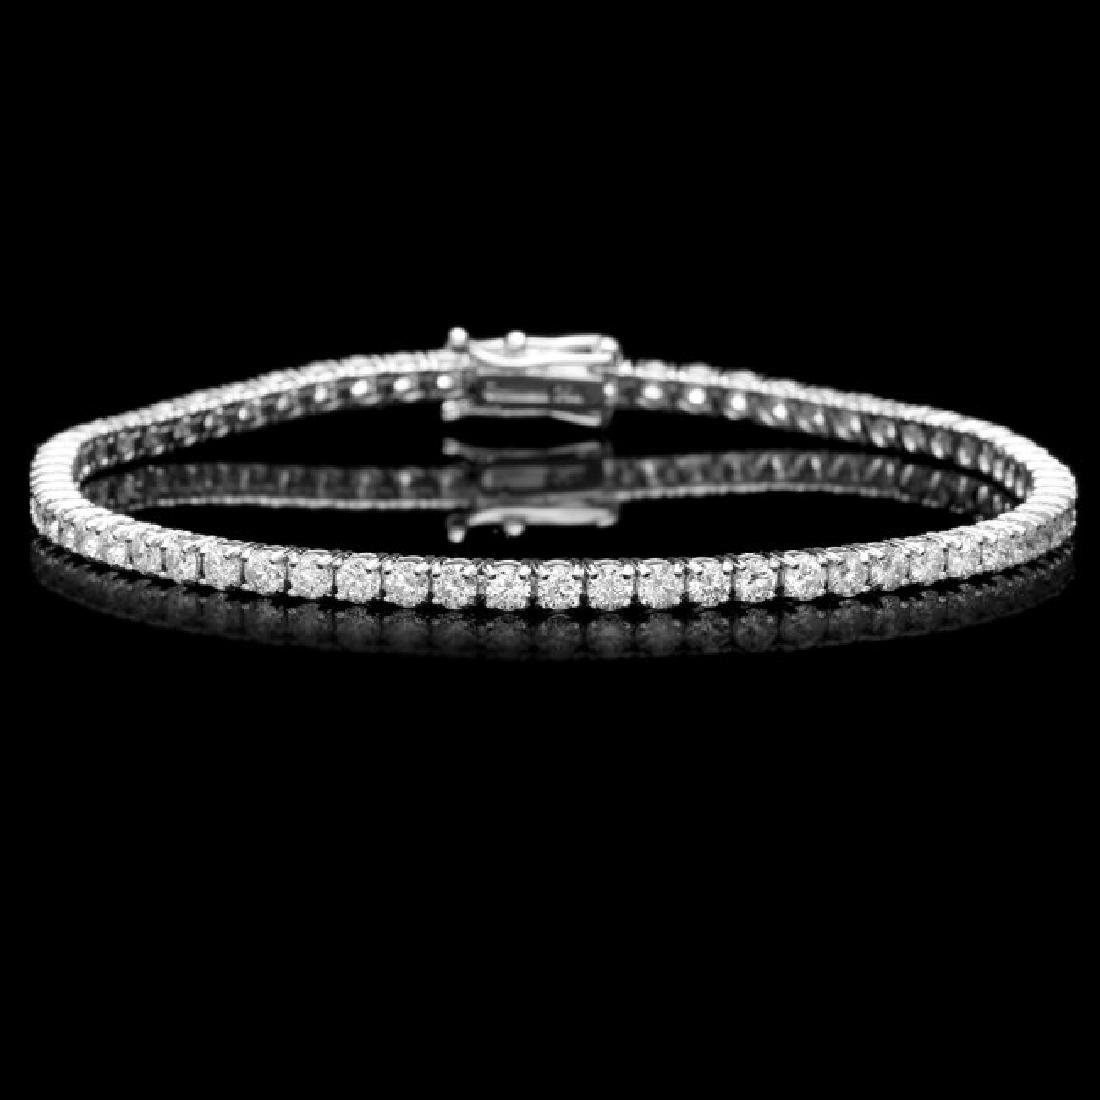 18k White Gold 4.65ct Diamond Bracelet